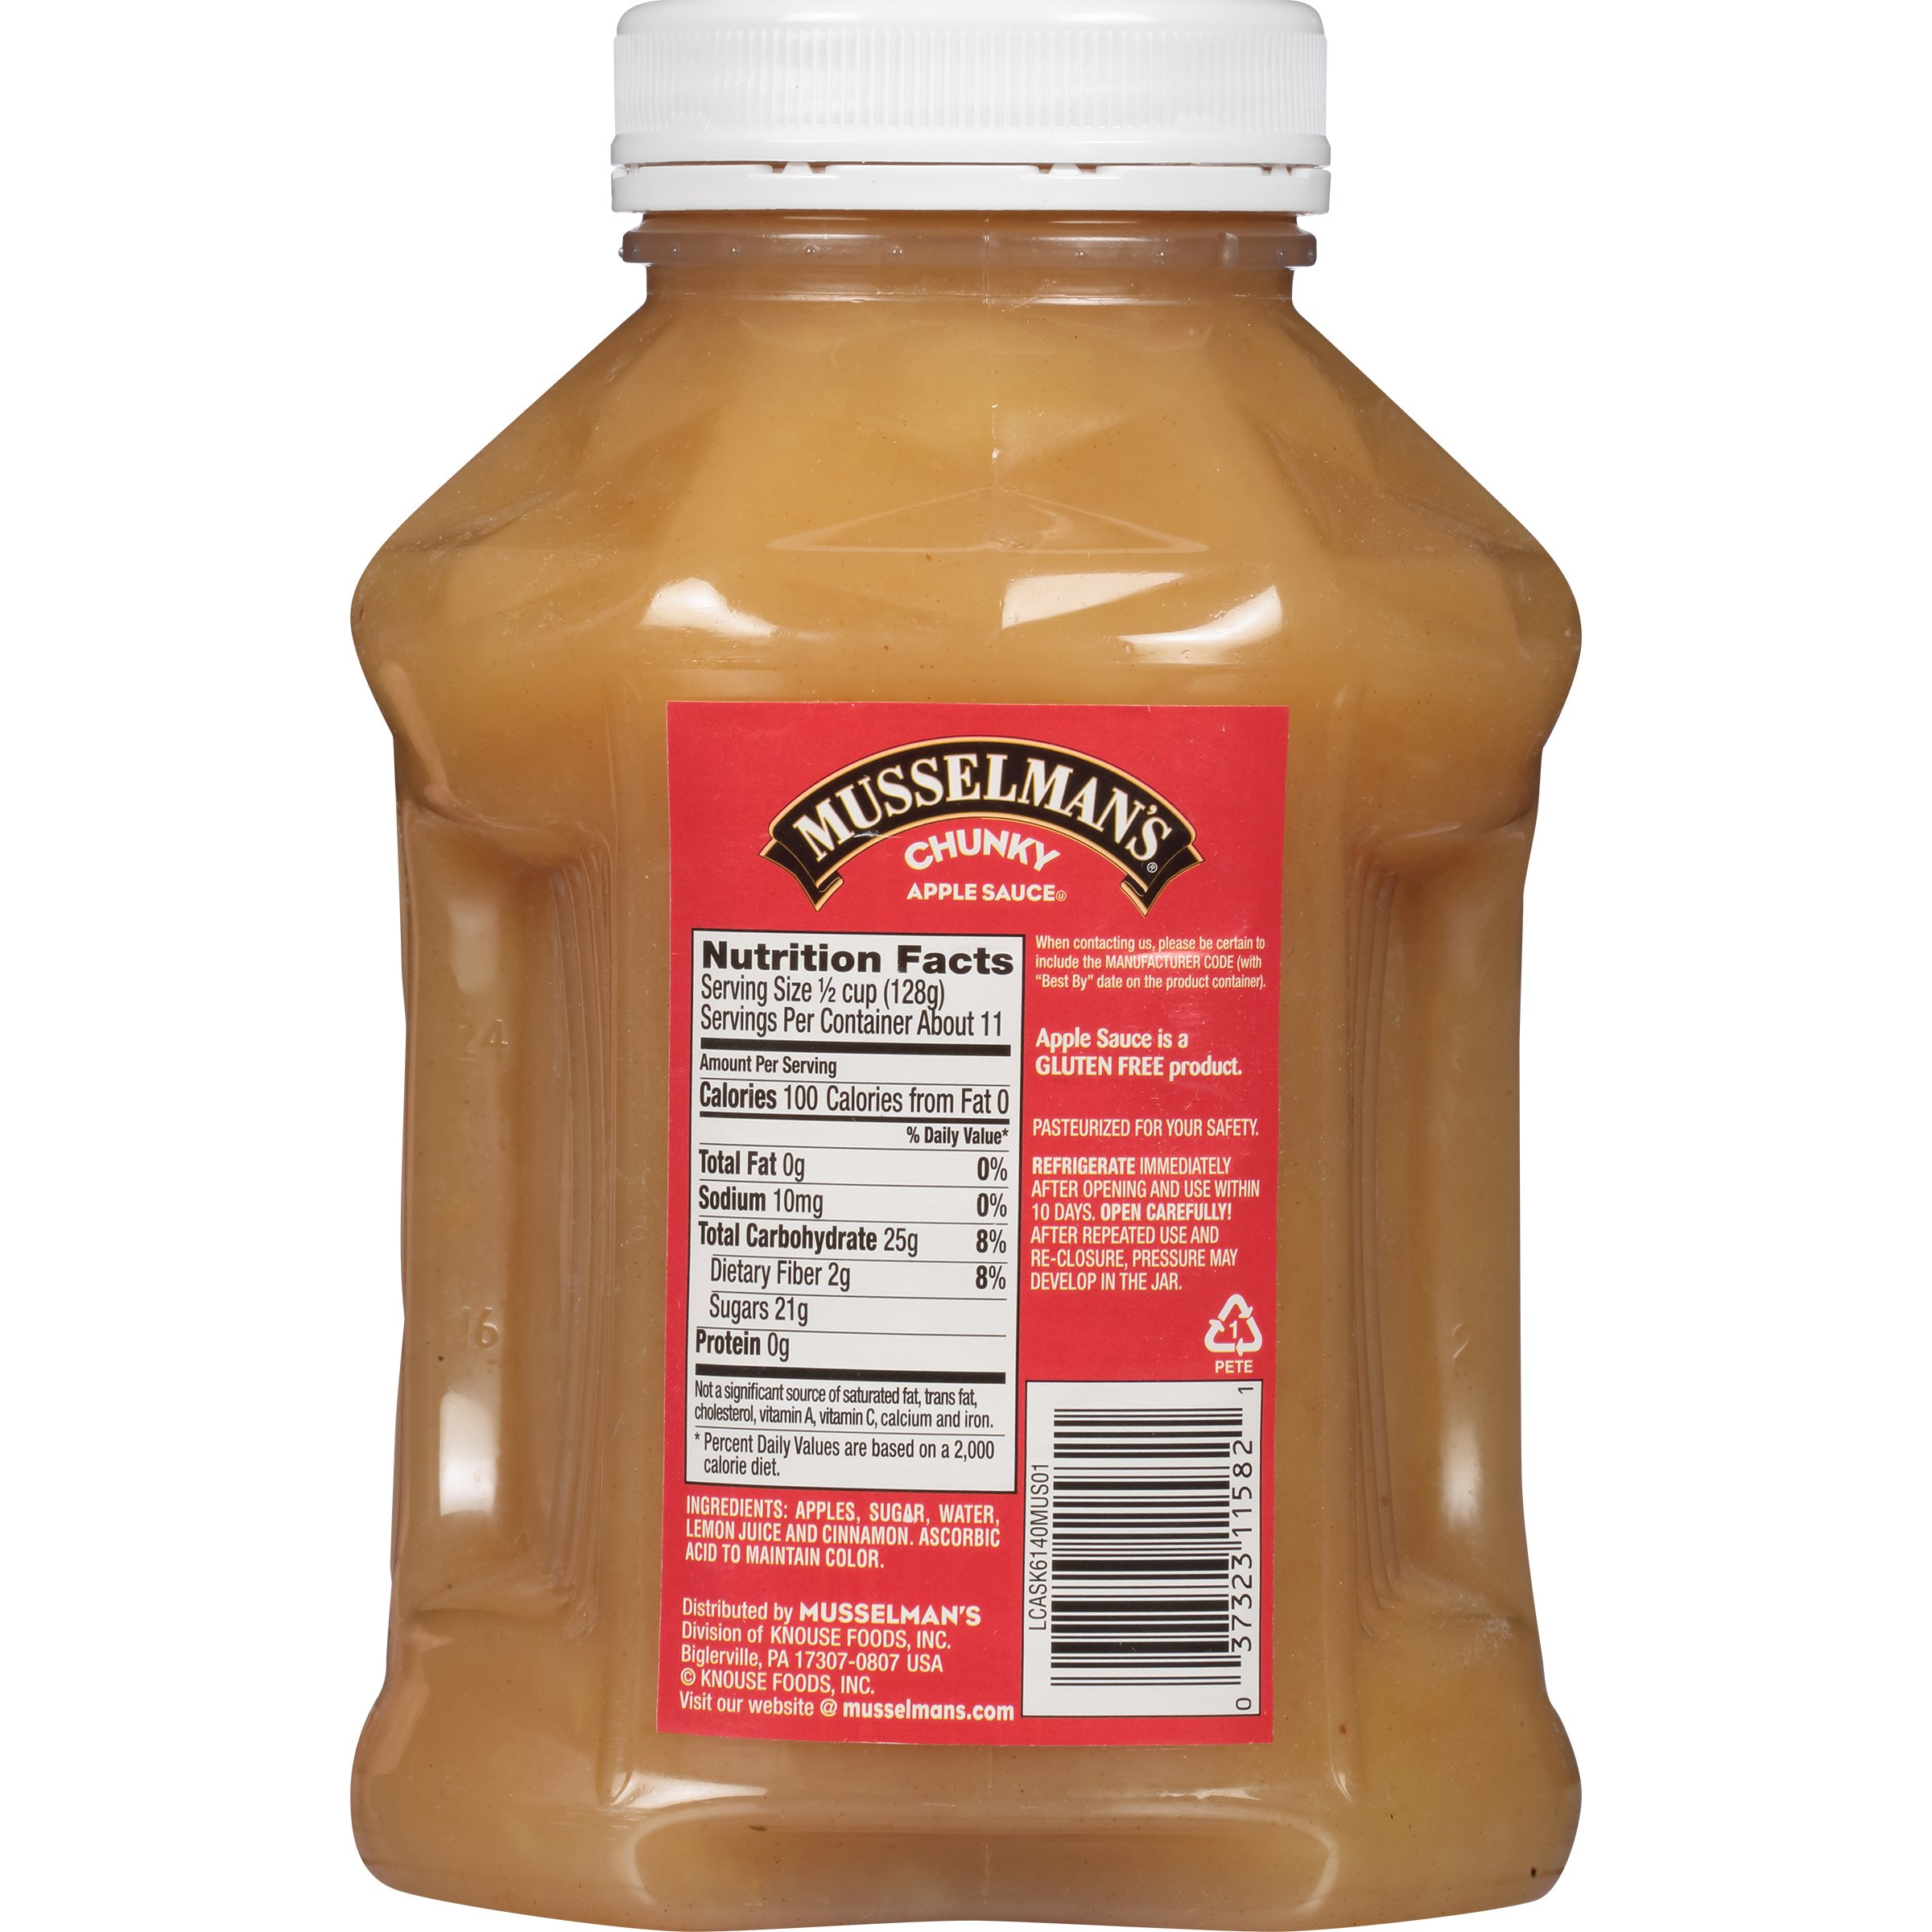 Musselman's Chunky Apple Sauce, 48 Ounce (Pack of 8) by Musselmans (Image #2)